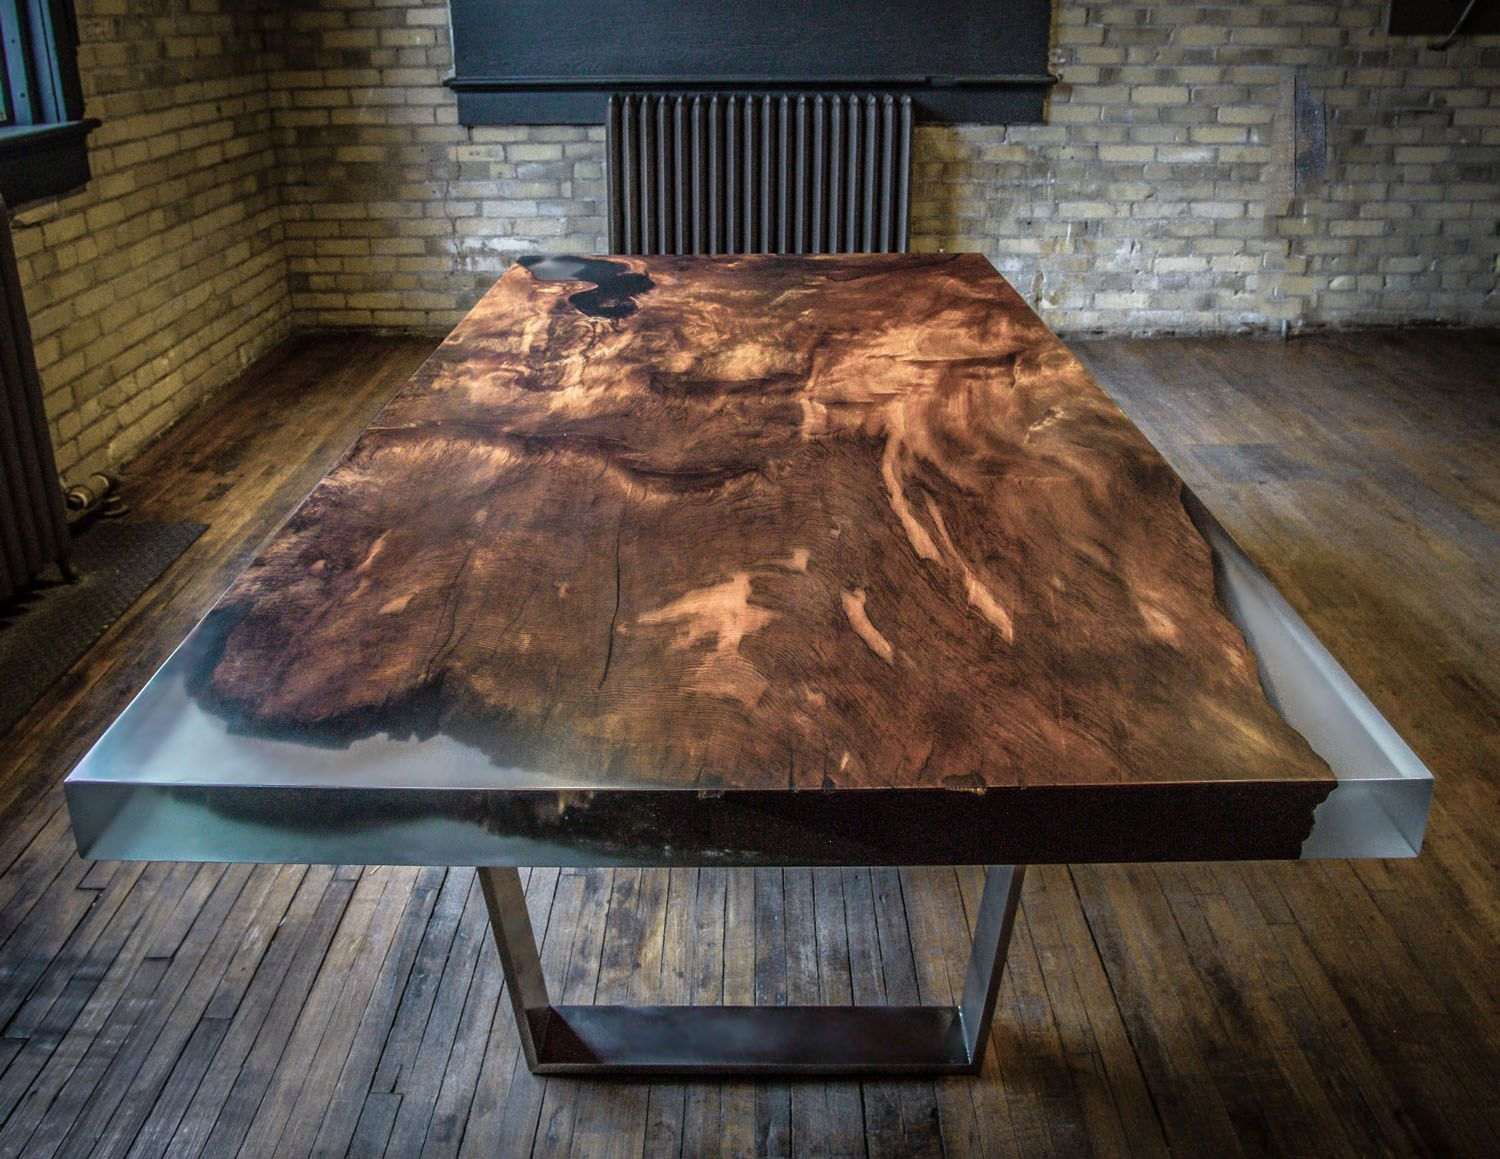 Custom Redwood And Resin Dining Table With Metal Legs In Modern Industrial Warehouse Space